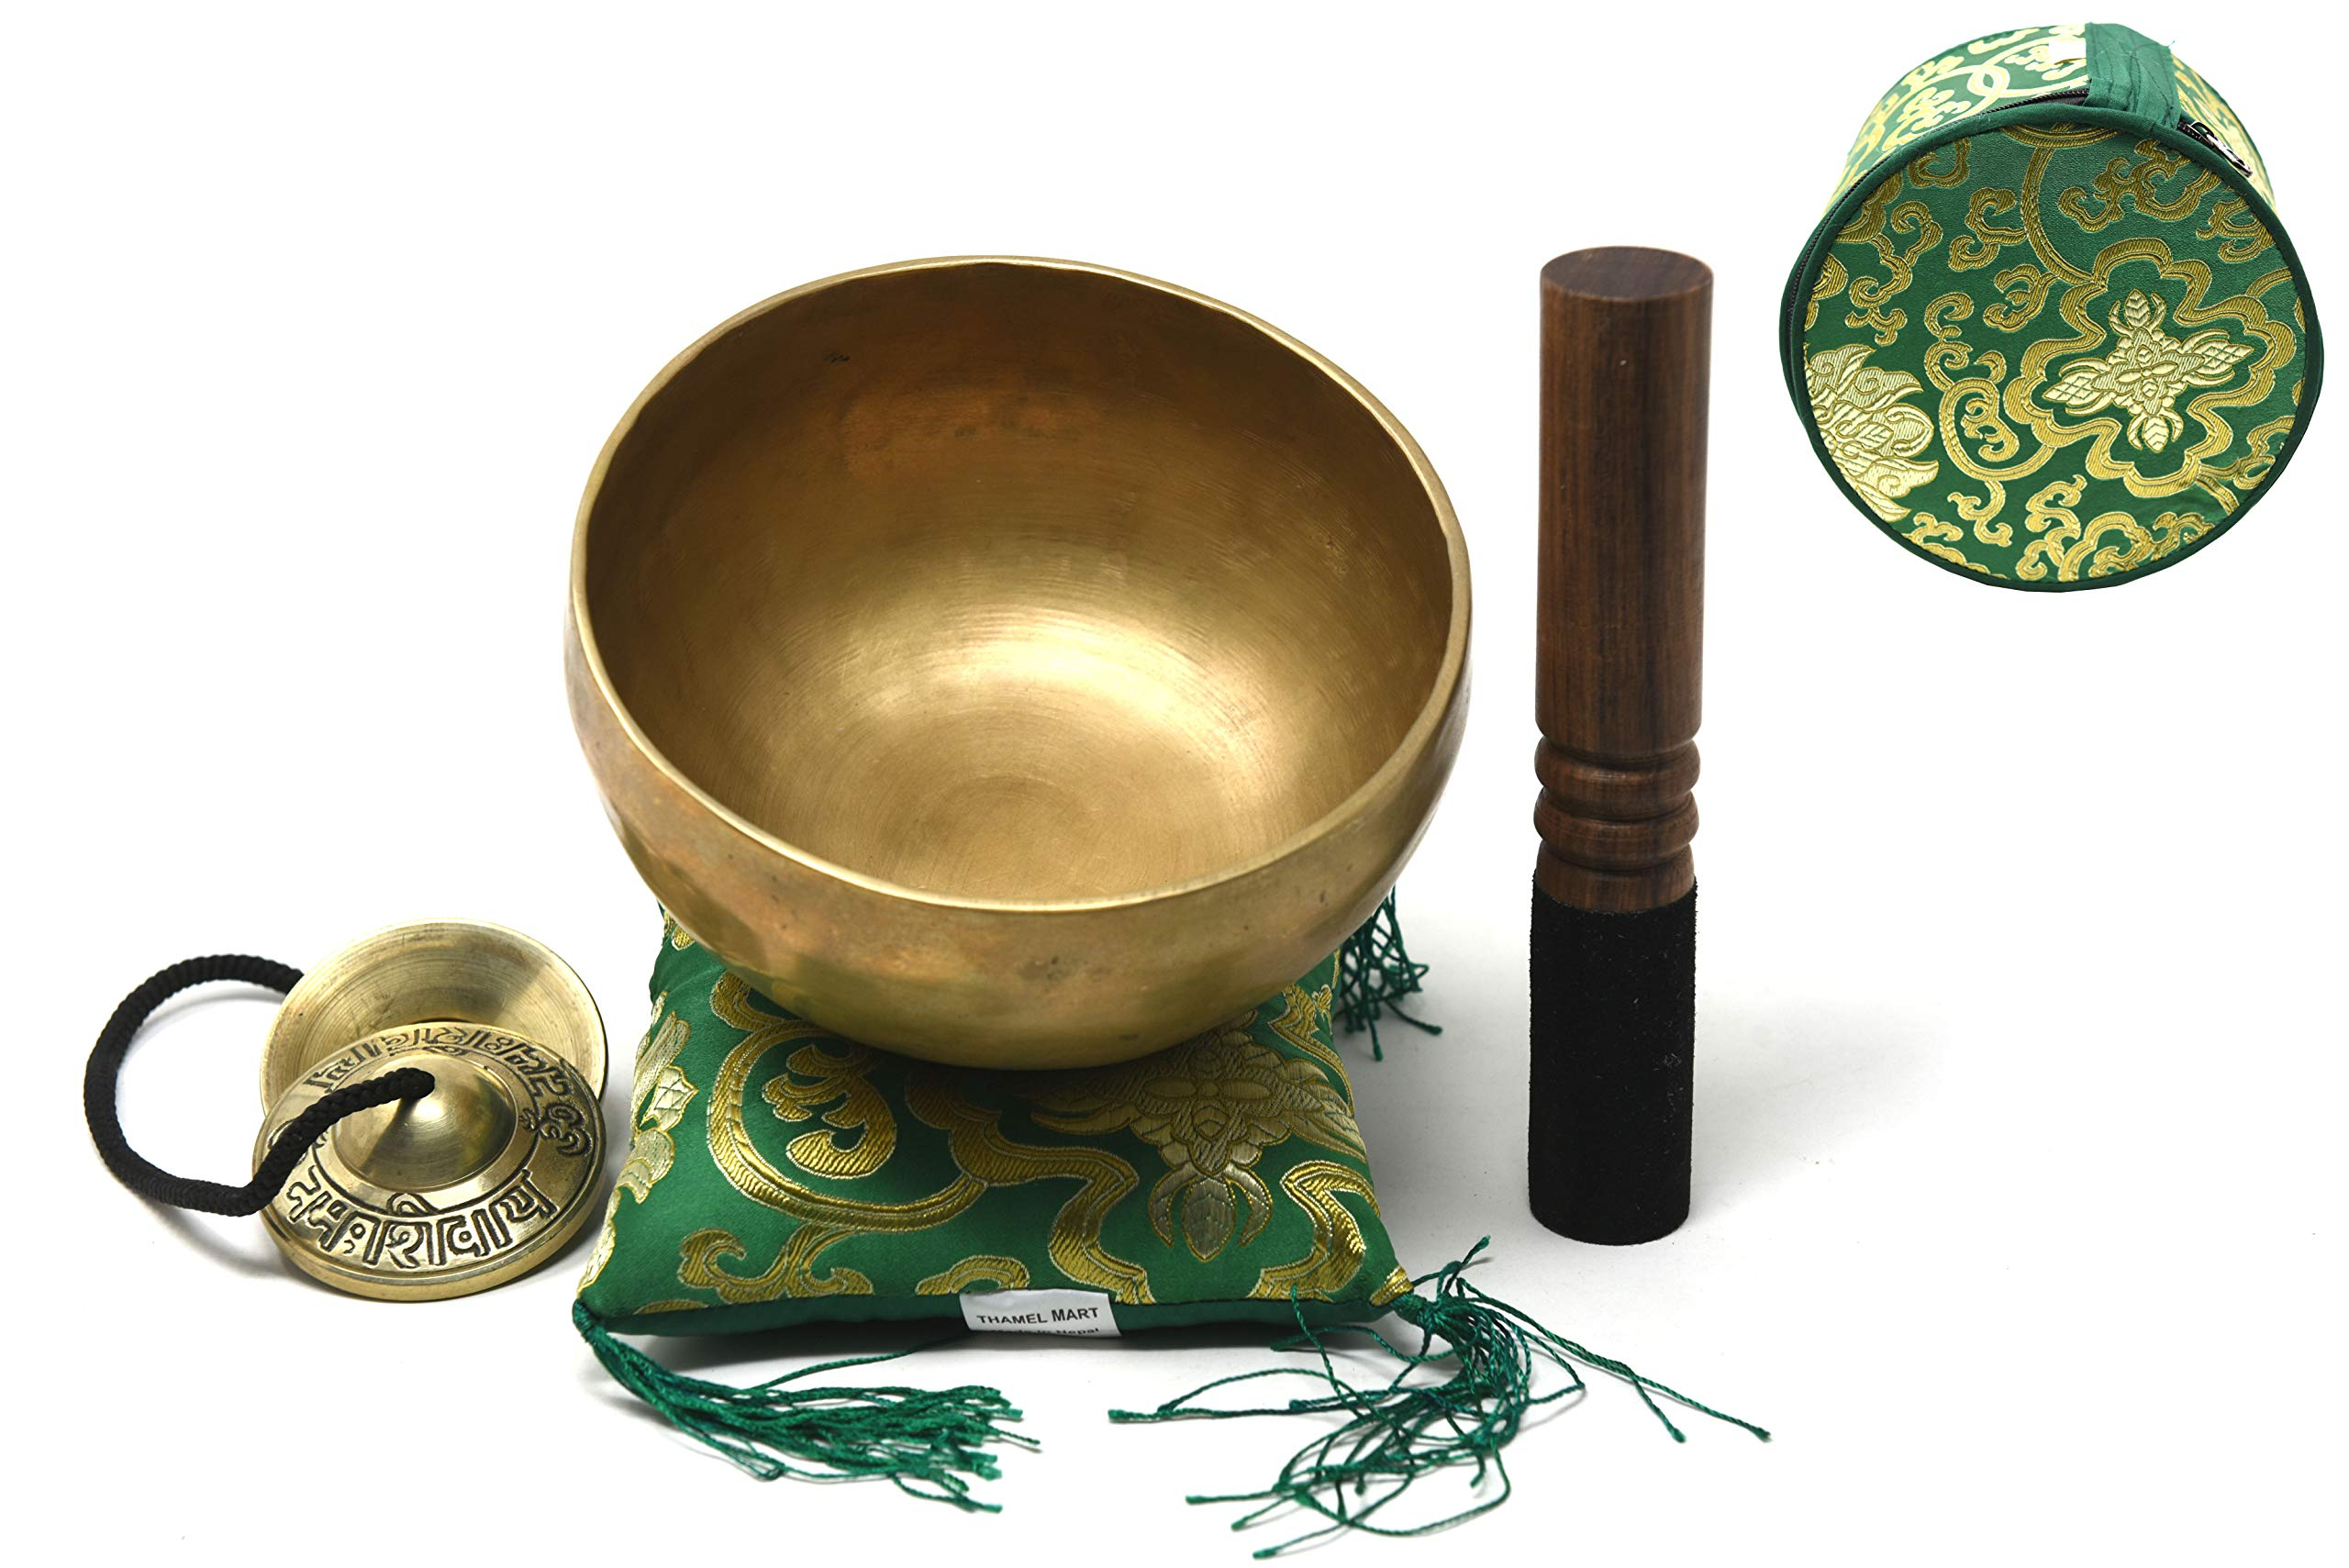 6'' Superb Crown Chakra Tibetan Singing Bowl for Meditation, Sound Healing, Yoga & Sound Therapy. Made of 7 metals. Cushion Suede leather Wooden Mallet, Box & Tingsha nincluded ~Nepal by Thamelmart.